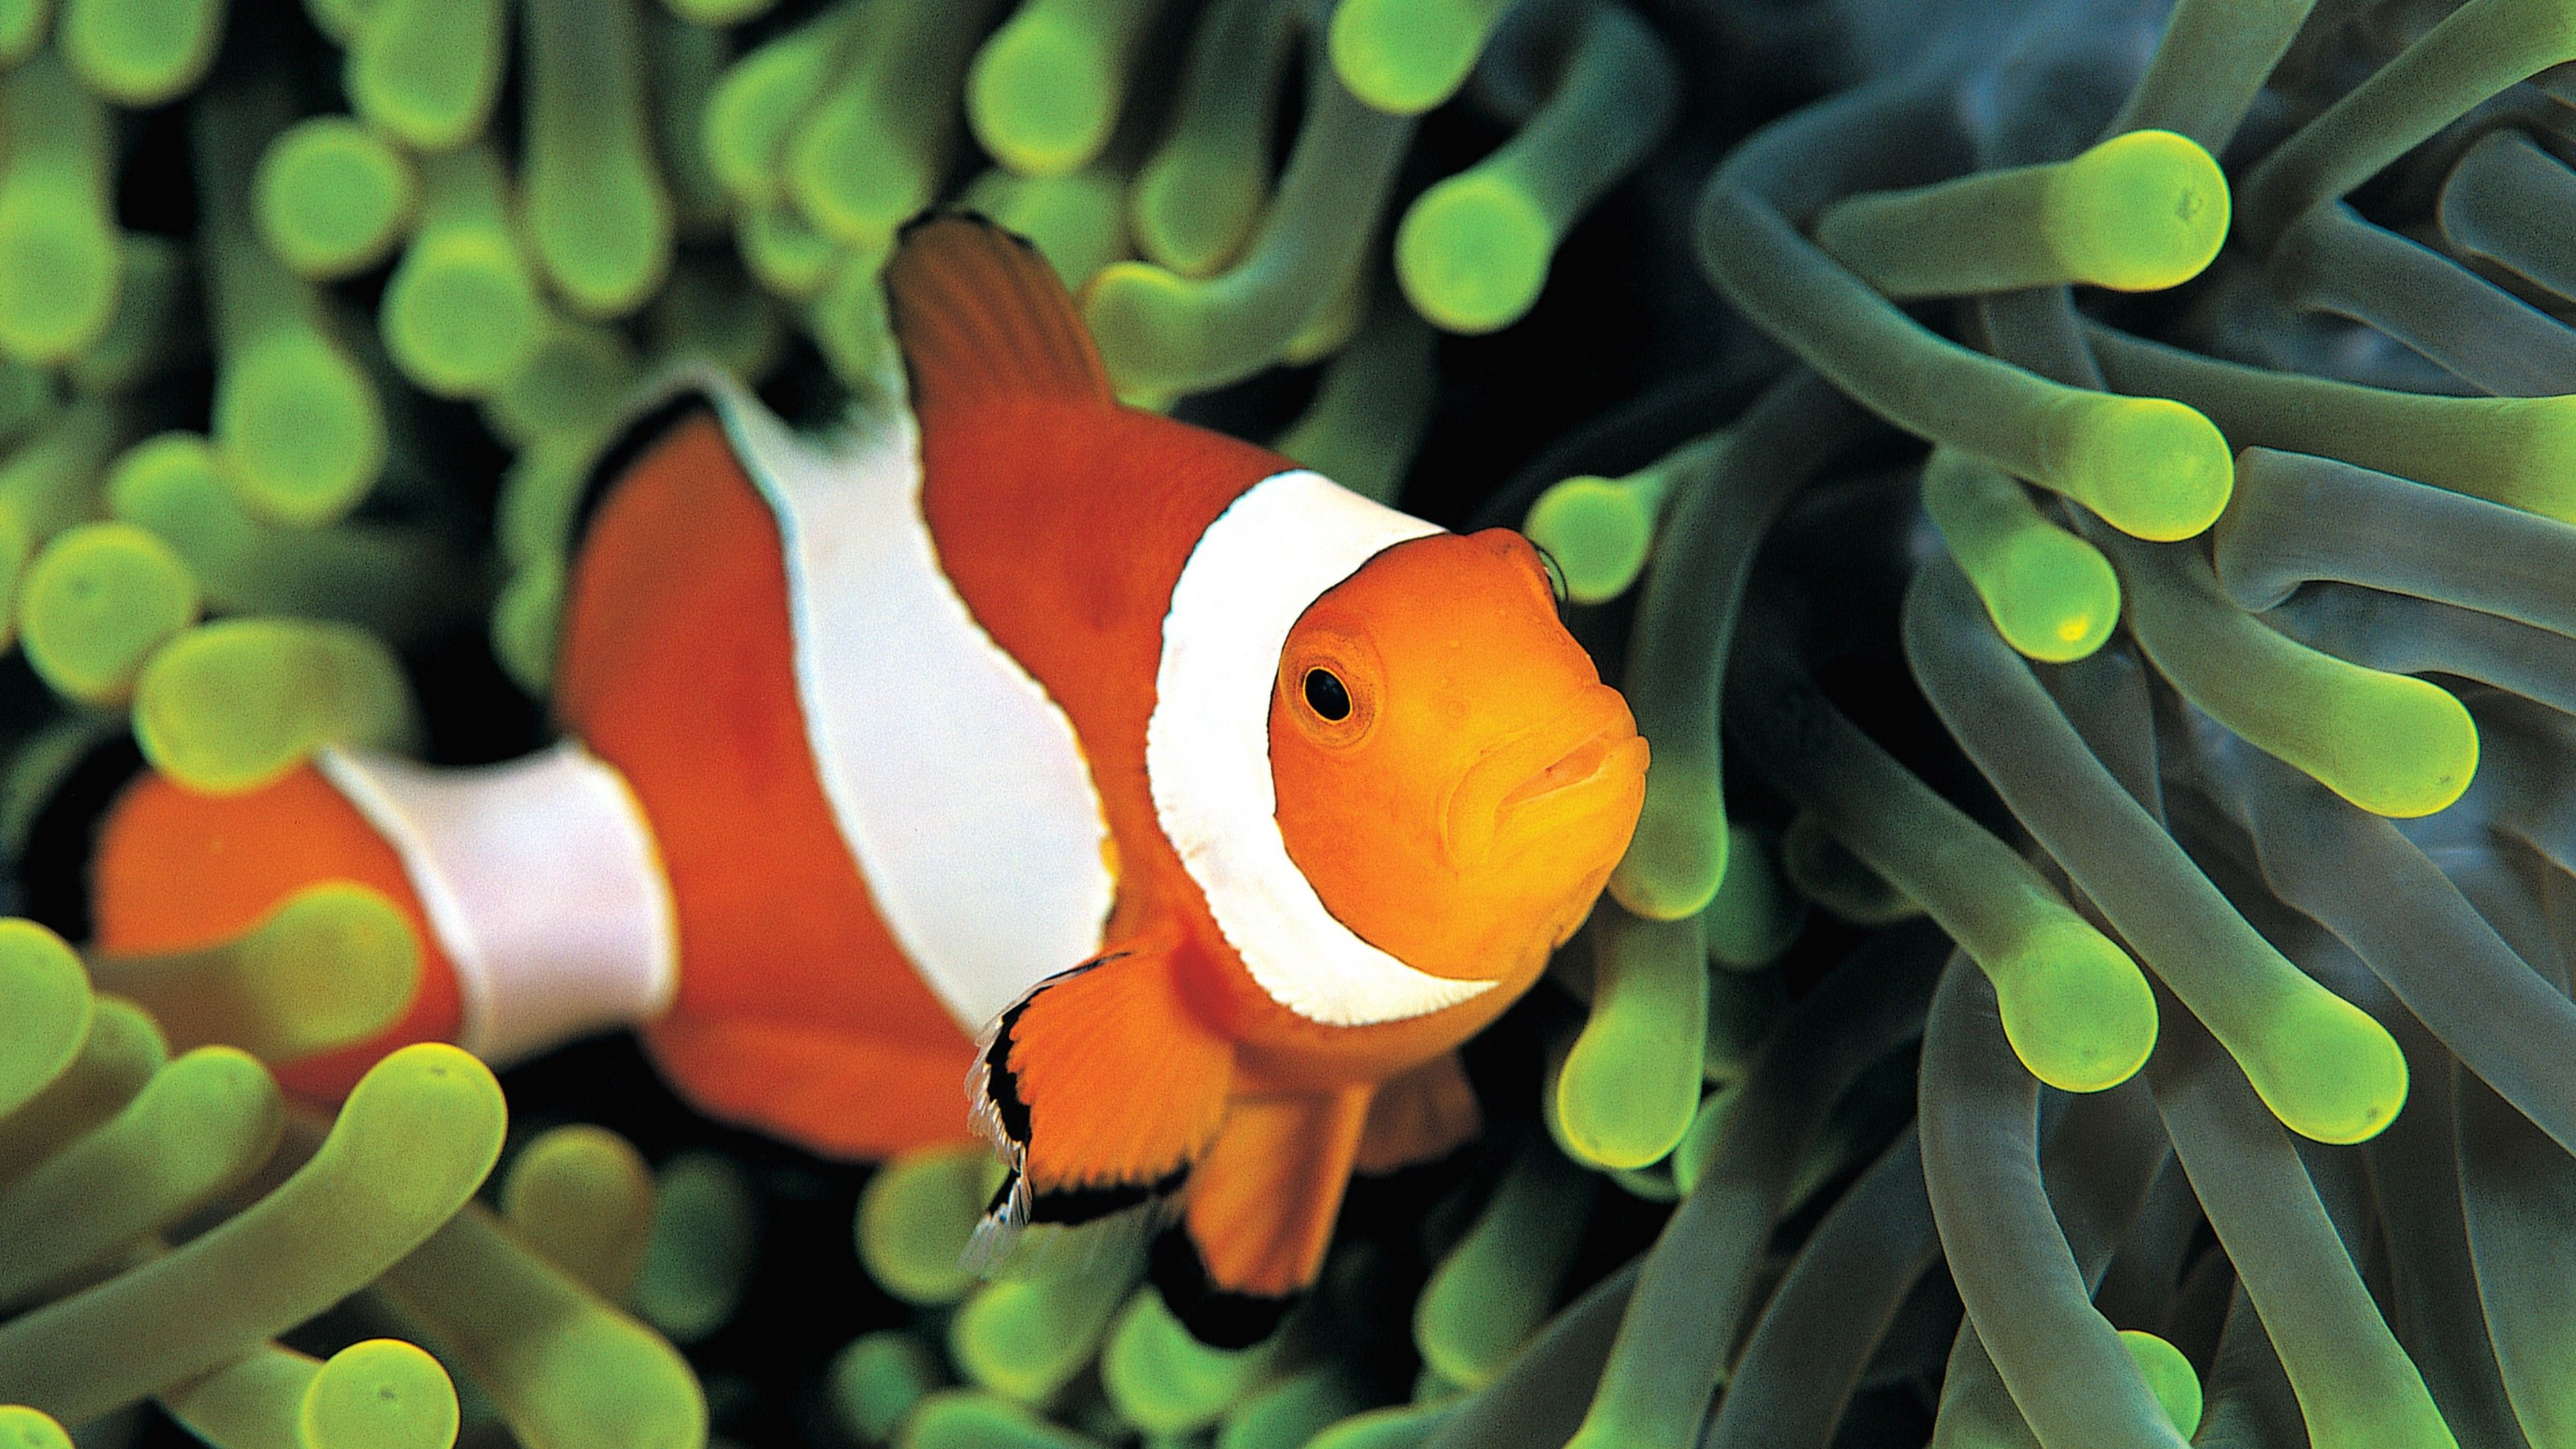 Pin By Fashion Lover On For The Love Of Animals In 2020 Clown Fish Reef Safe Fish Fish